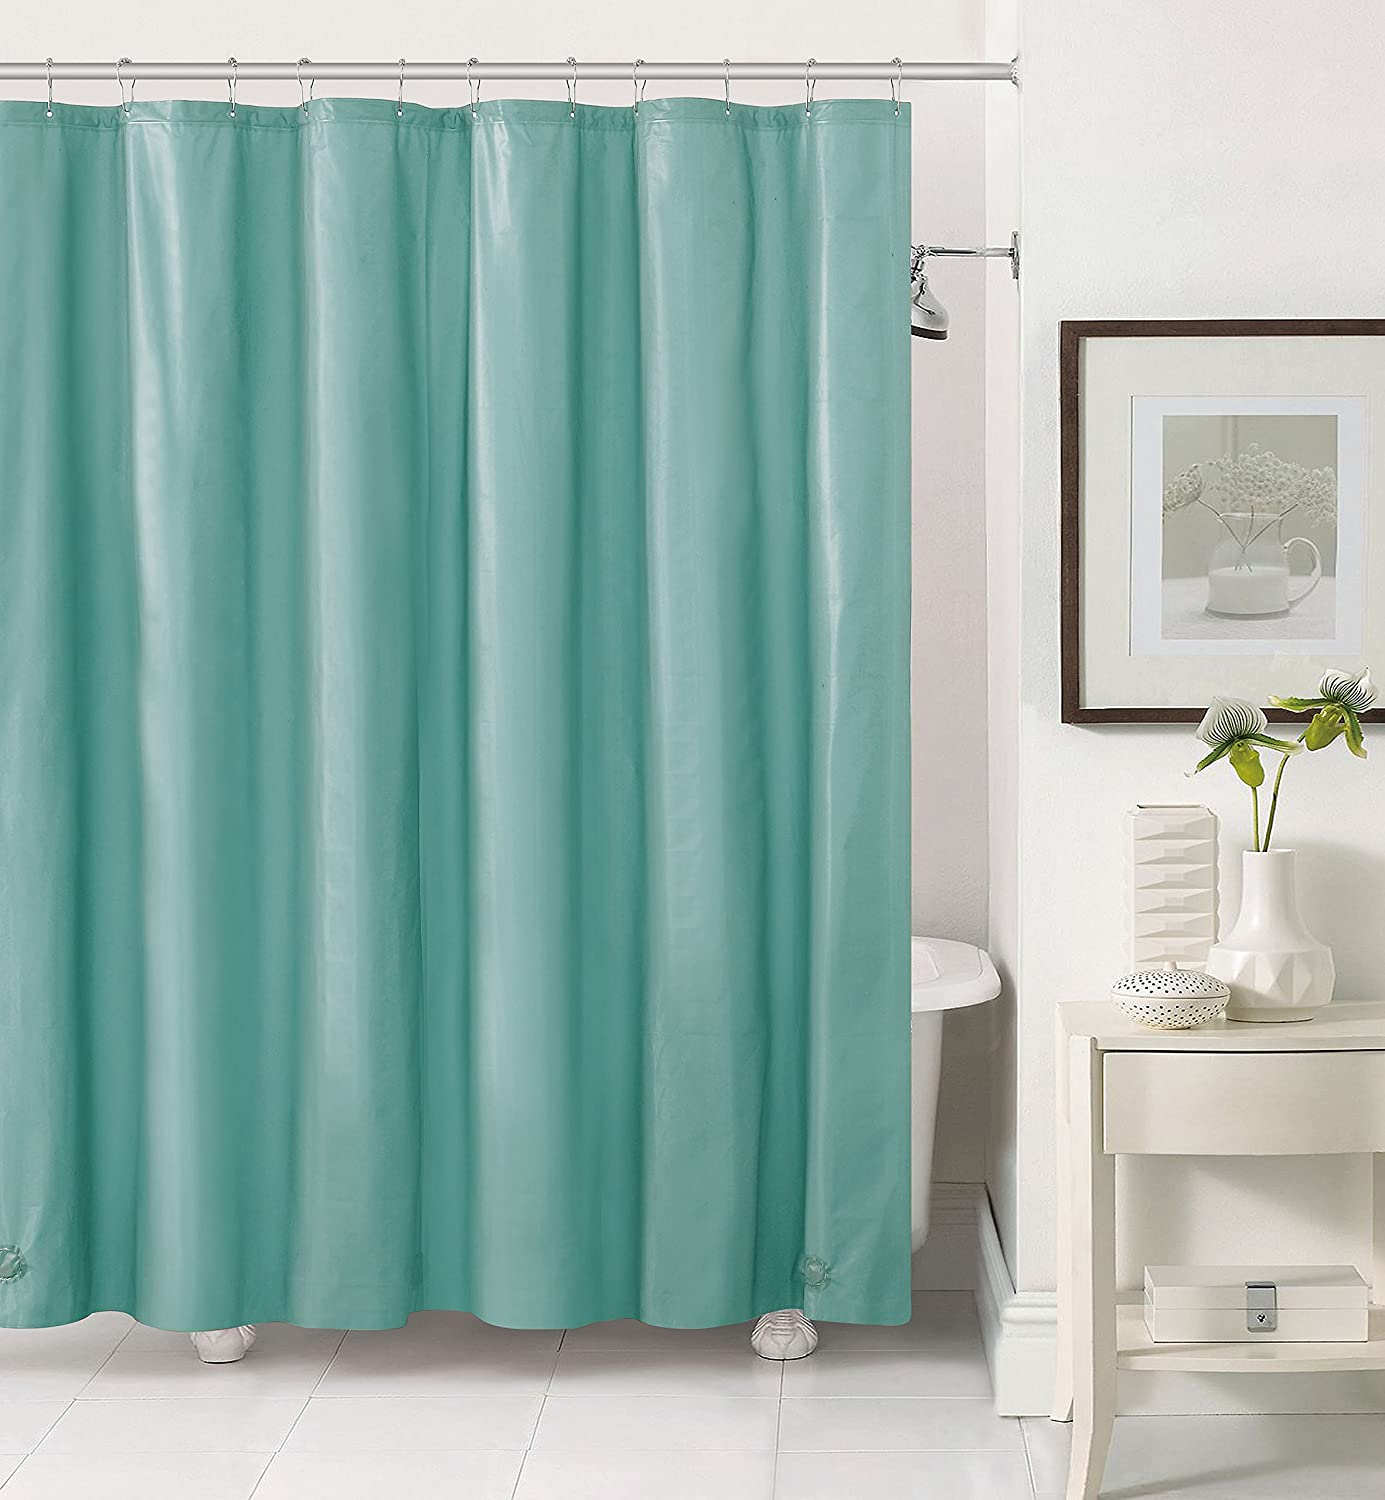 Victoria Classics PV3-LIN-7272-EL-SG Peva Shower Liner 72, 3 Gauge with Magnets And Grommets Elias-Sage Luxury Home